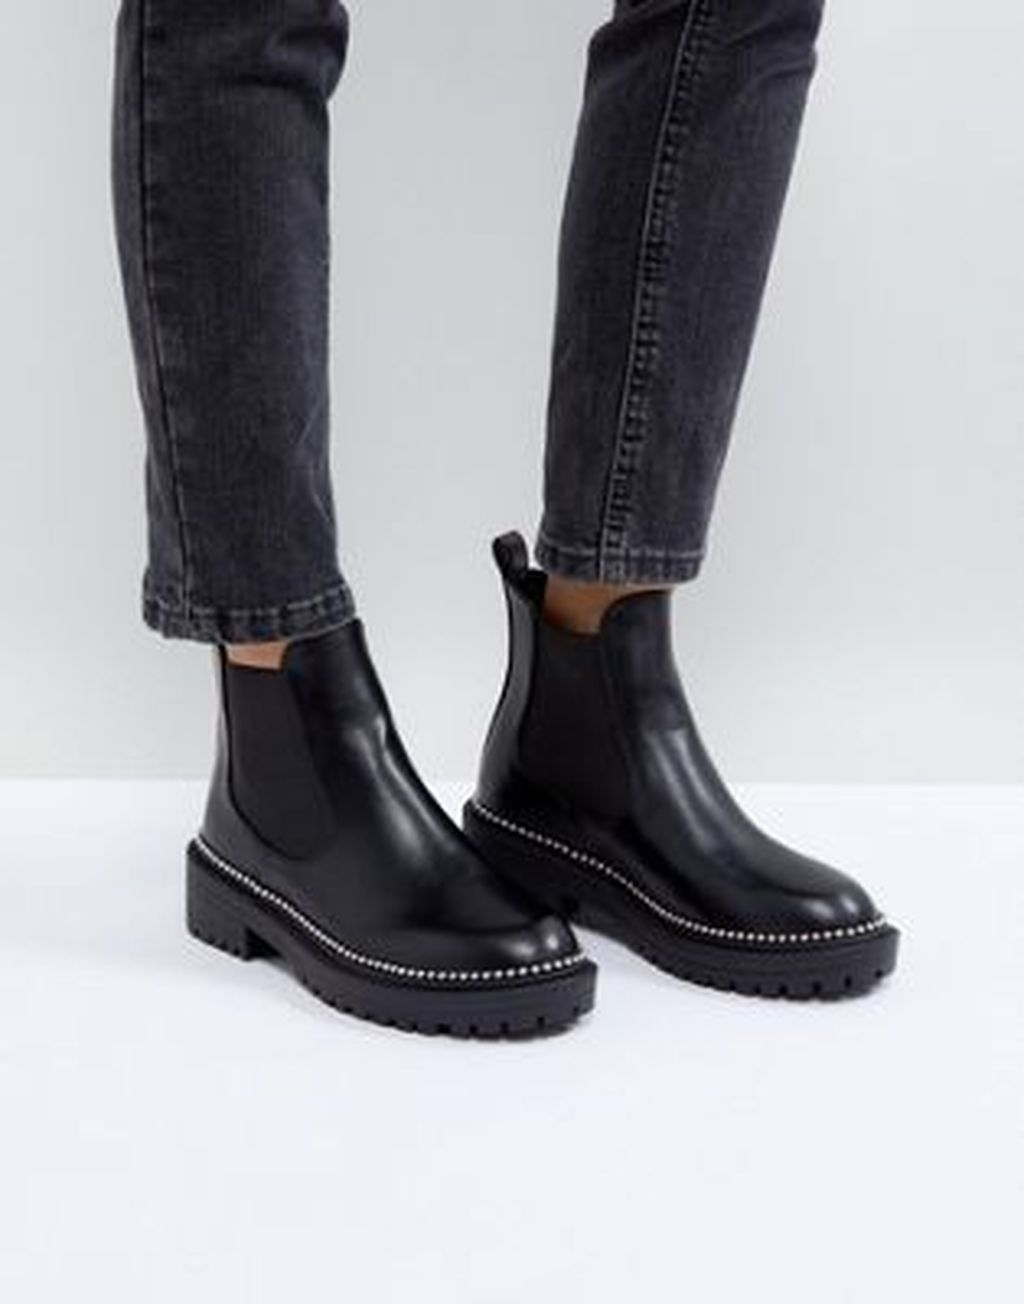 Pin By Moniczek On Young Wild Free Chelsea Boots Outfit Chelsea Boots Black Chelsea Boots